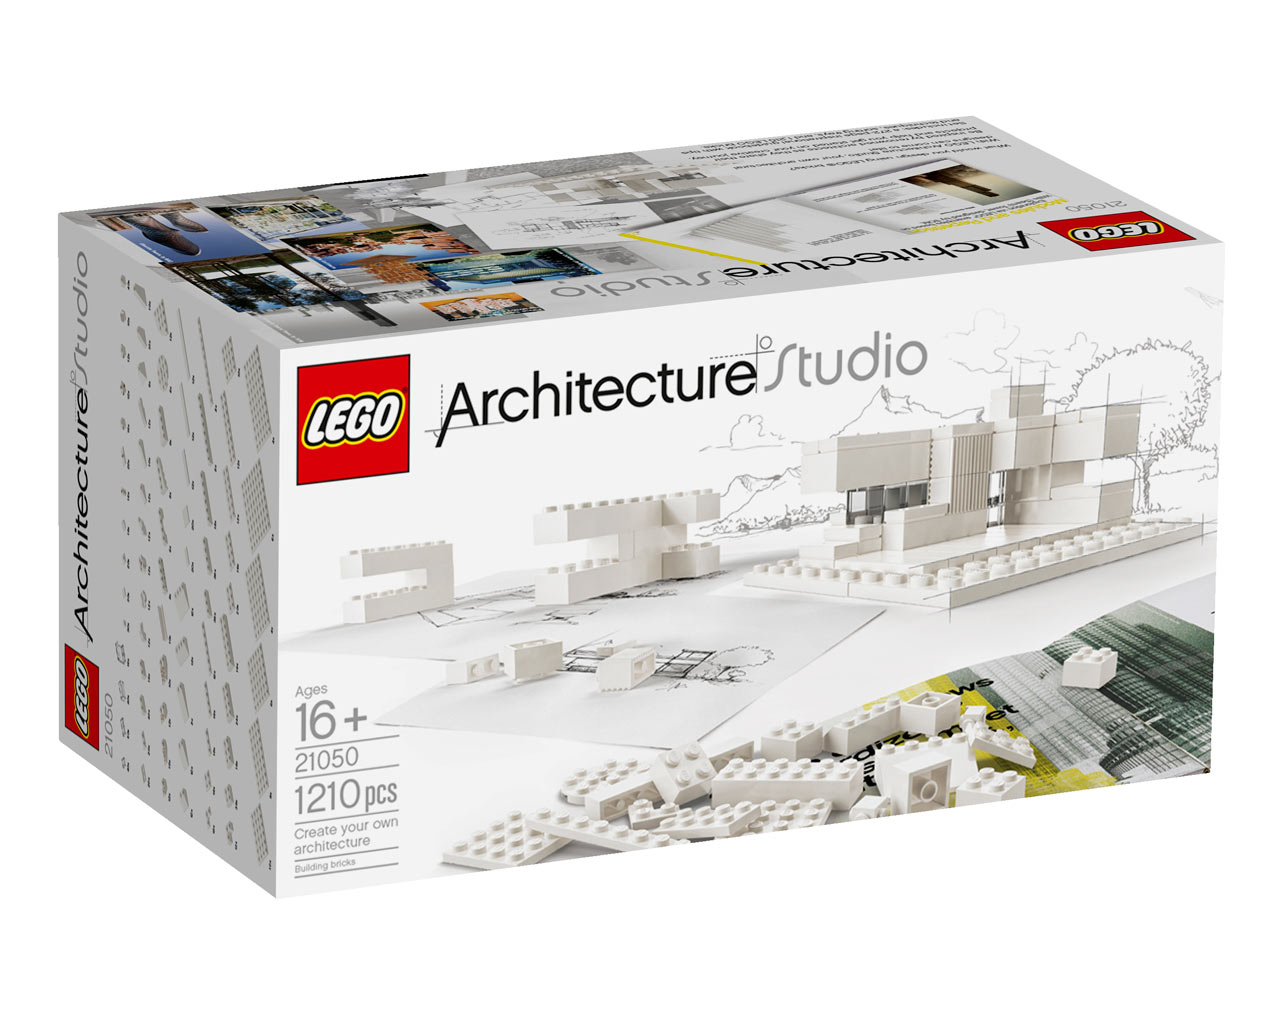 lego architecture studio architect architectural building pieces marlite friday legos studios architects build kit teens adult レゴ adults own win